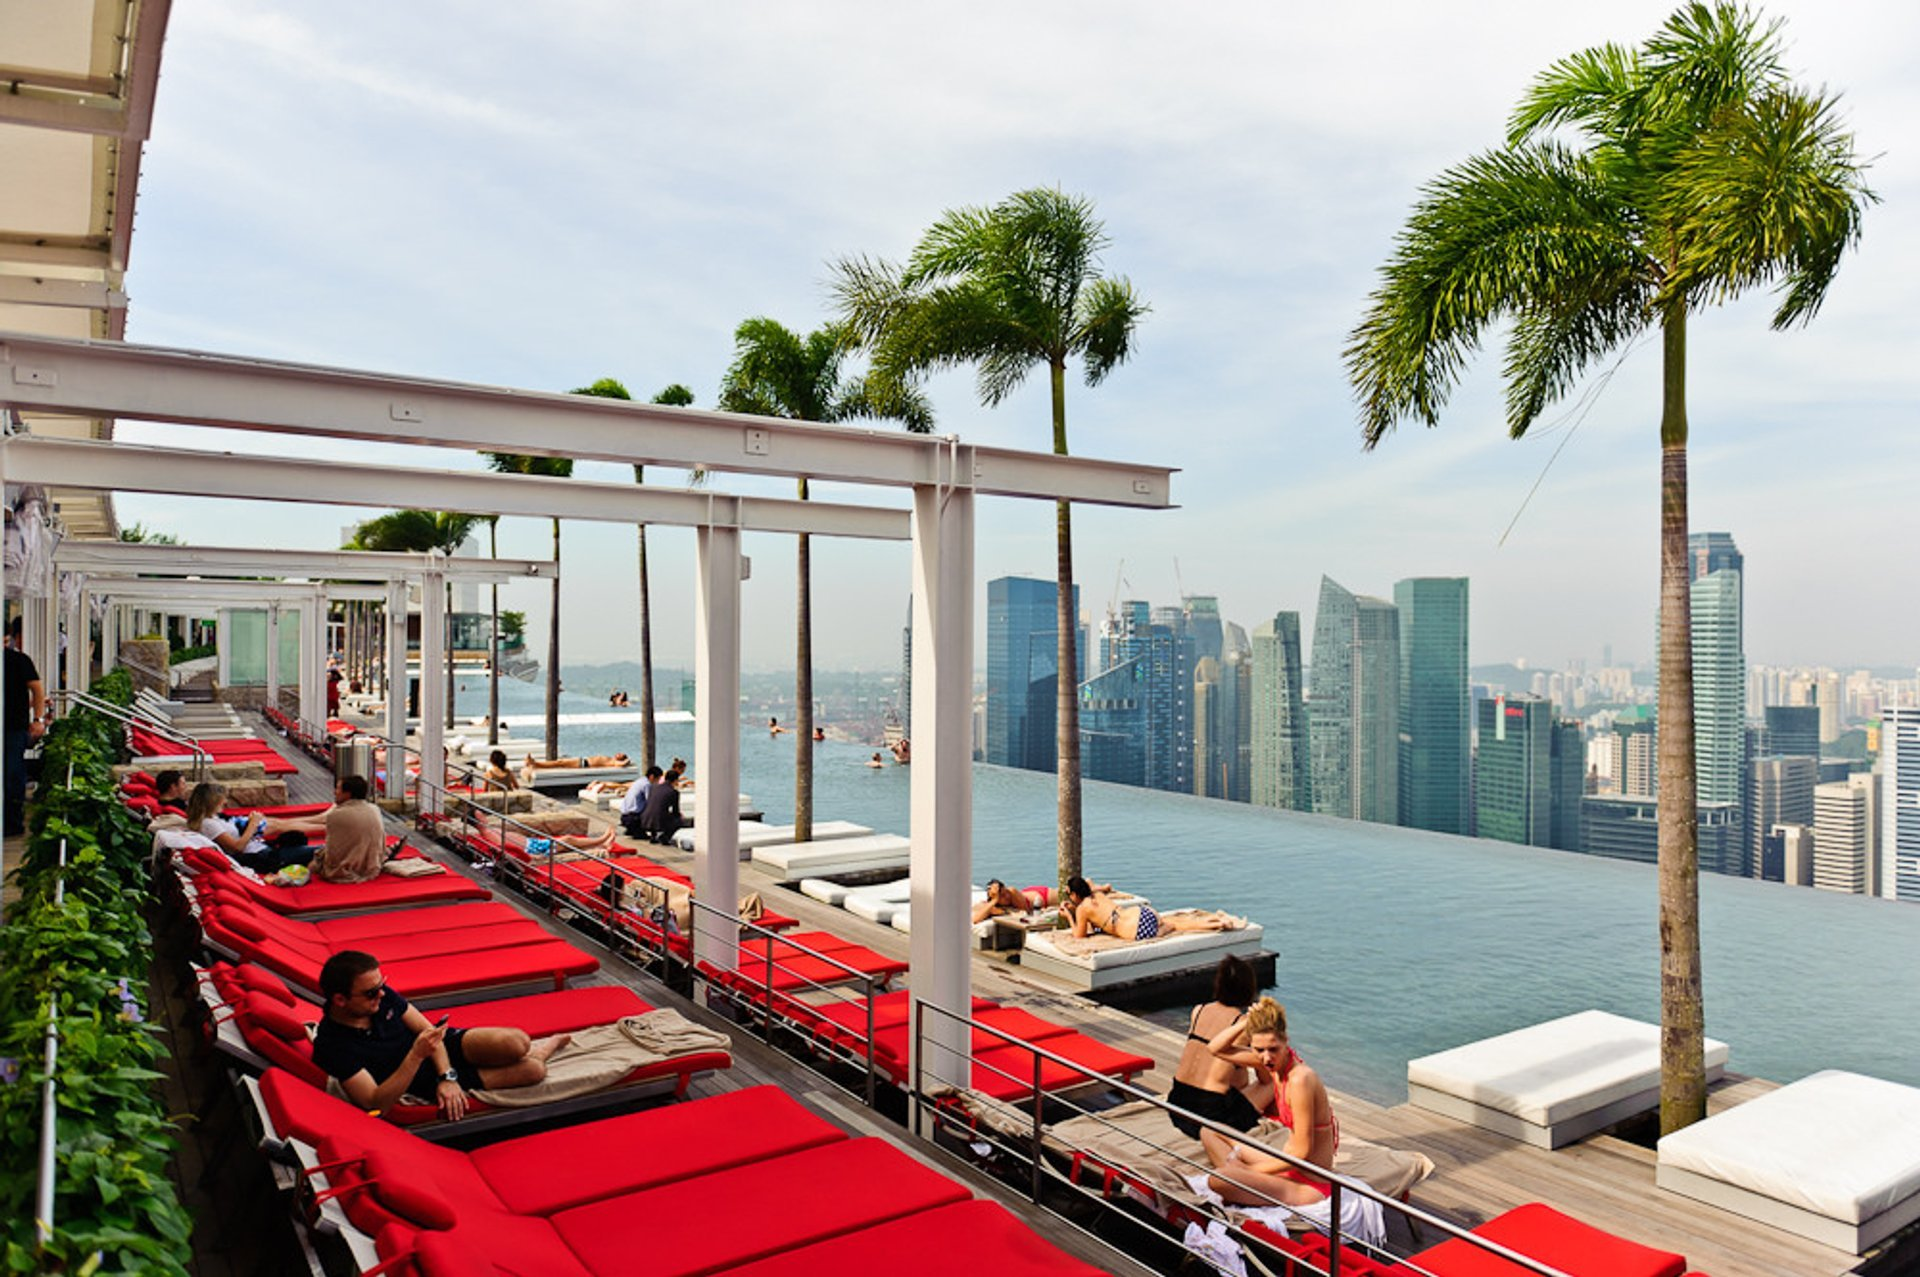 Marina Bay Sands SkyPark in Singapore - Best Time